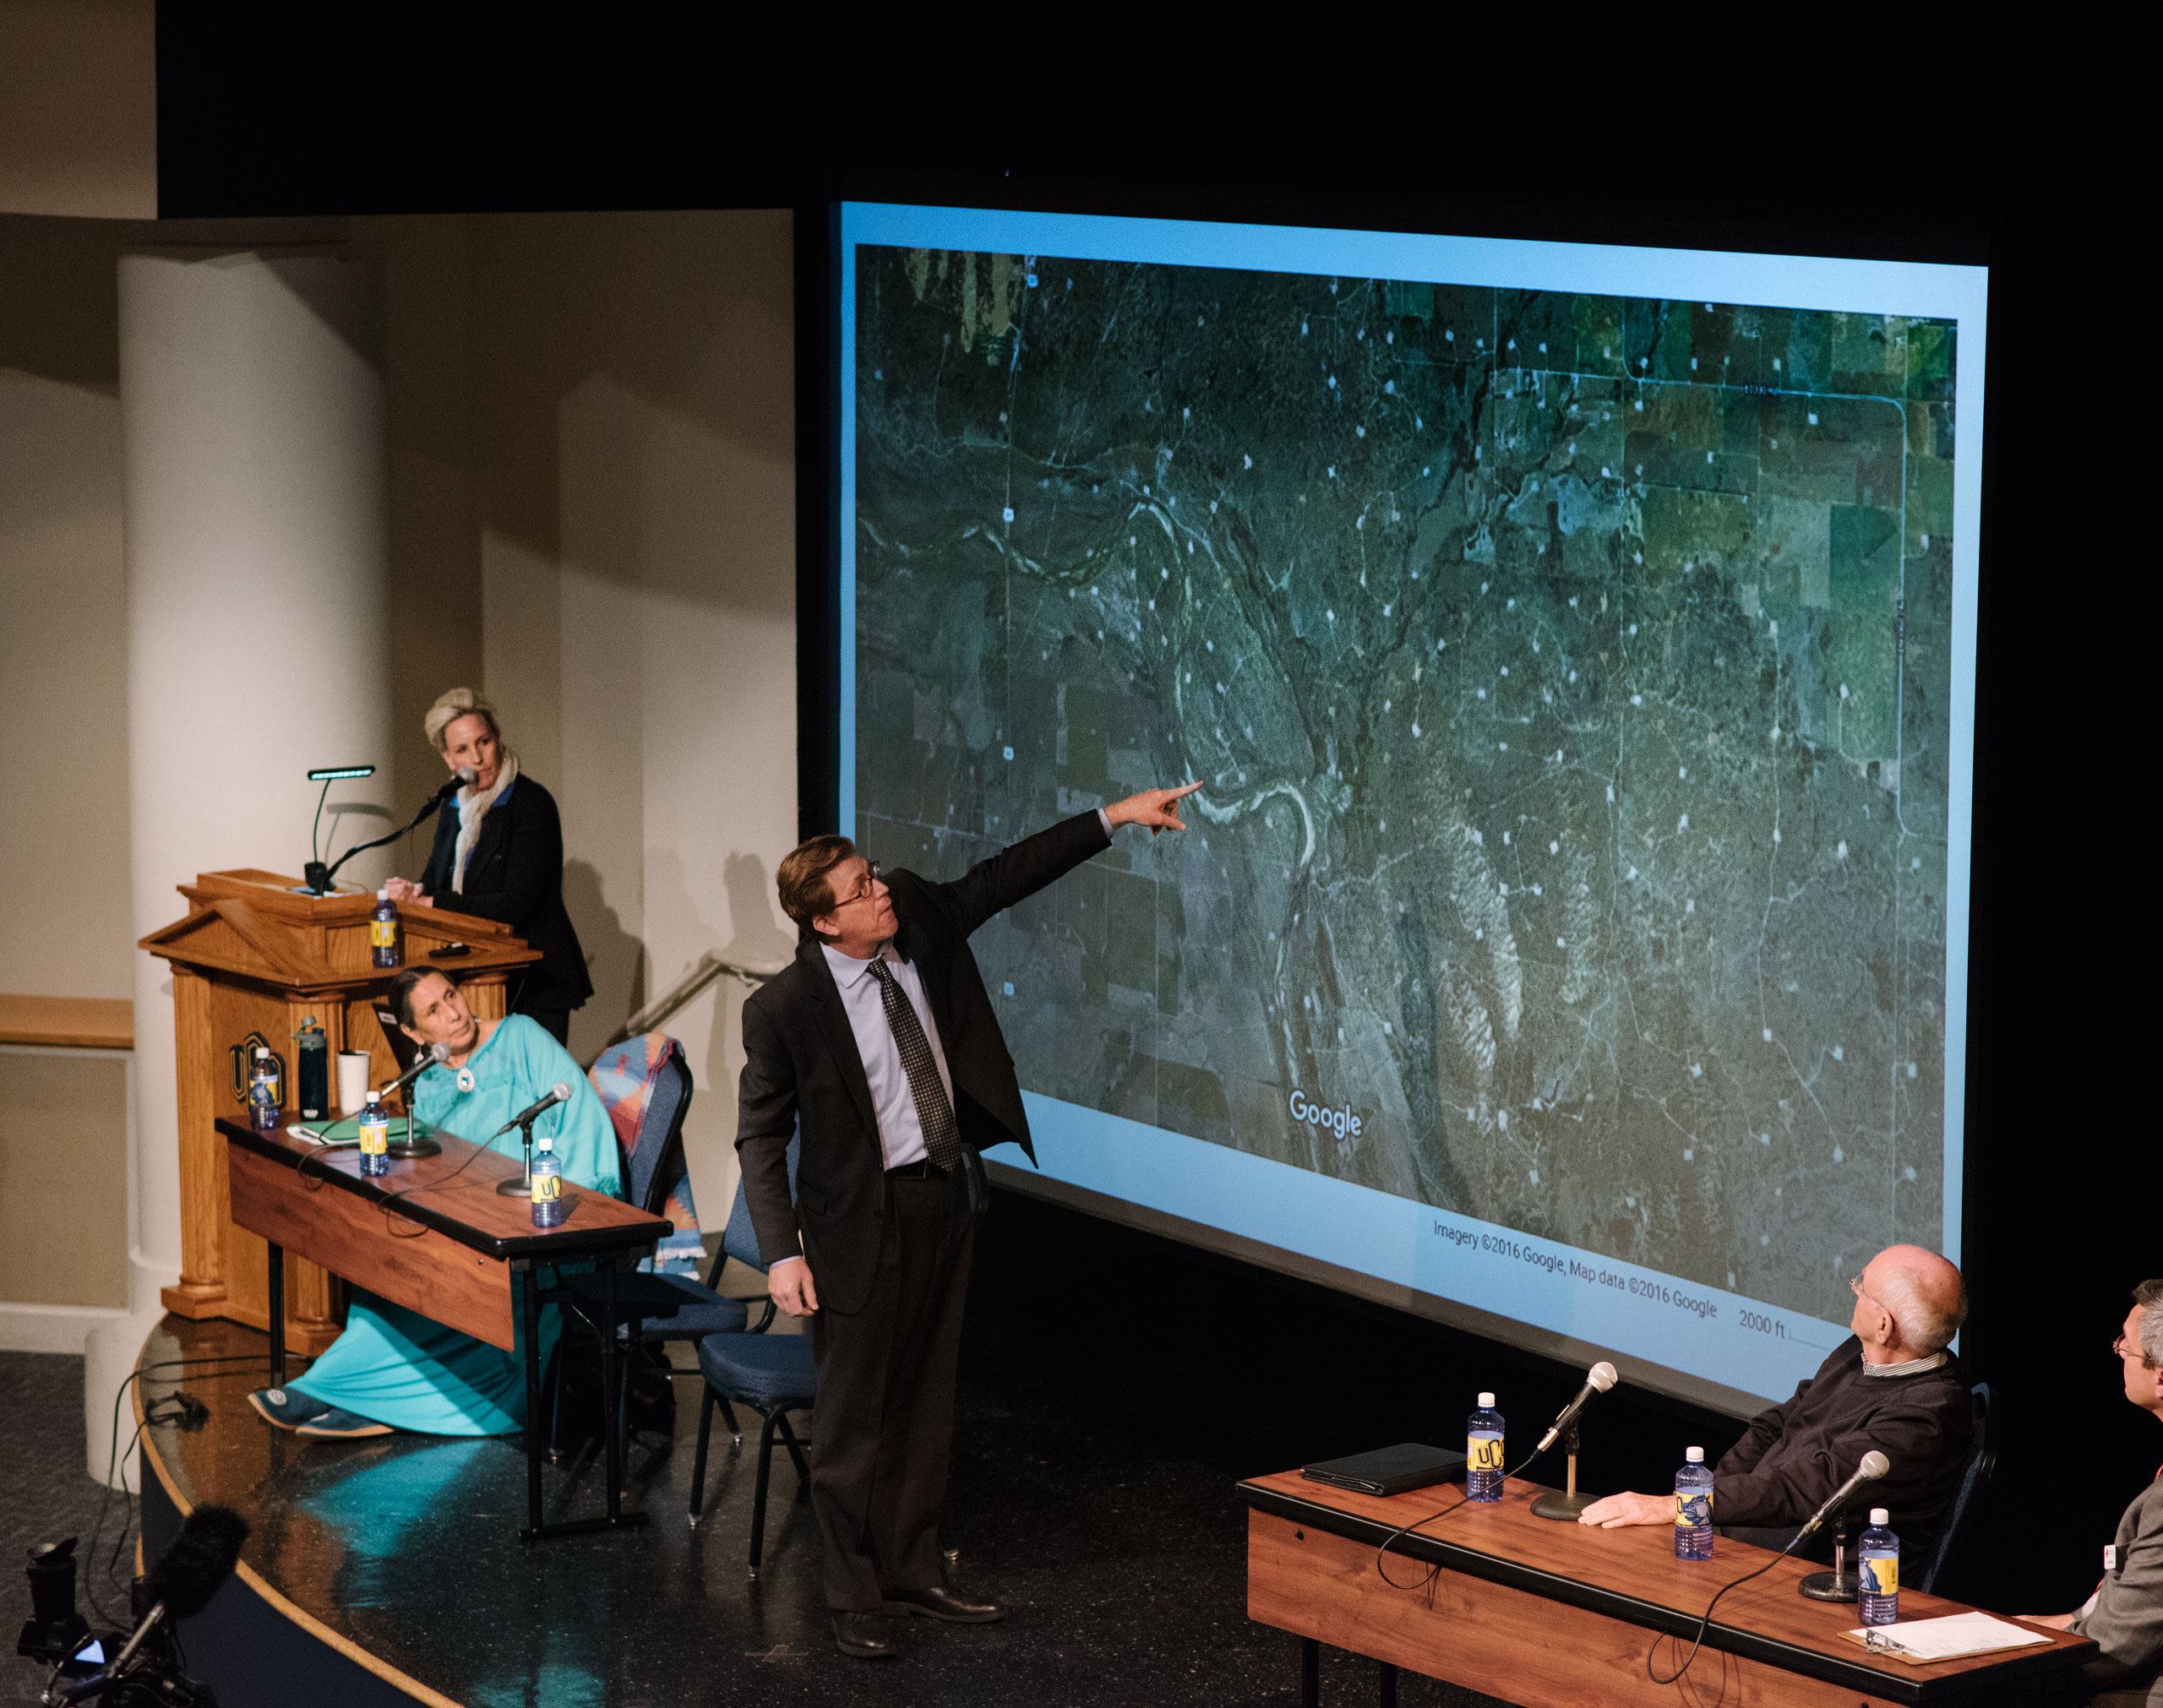 Johnson Bridgewater from the Sierra Club, points to areas affected by earthquakes at a public forum event hosted by Erin Brockovich and attended by notable public figures such as Casey Camp-Horinek from the Ponca Nation. Edmond, OK